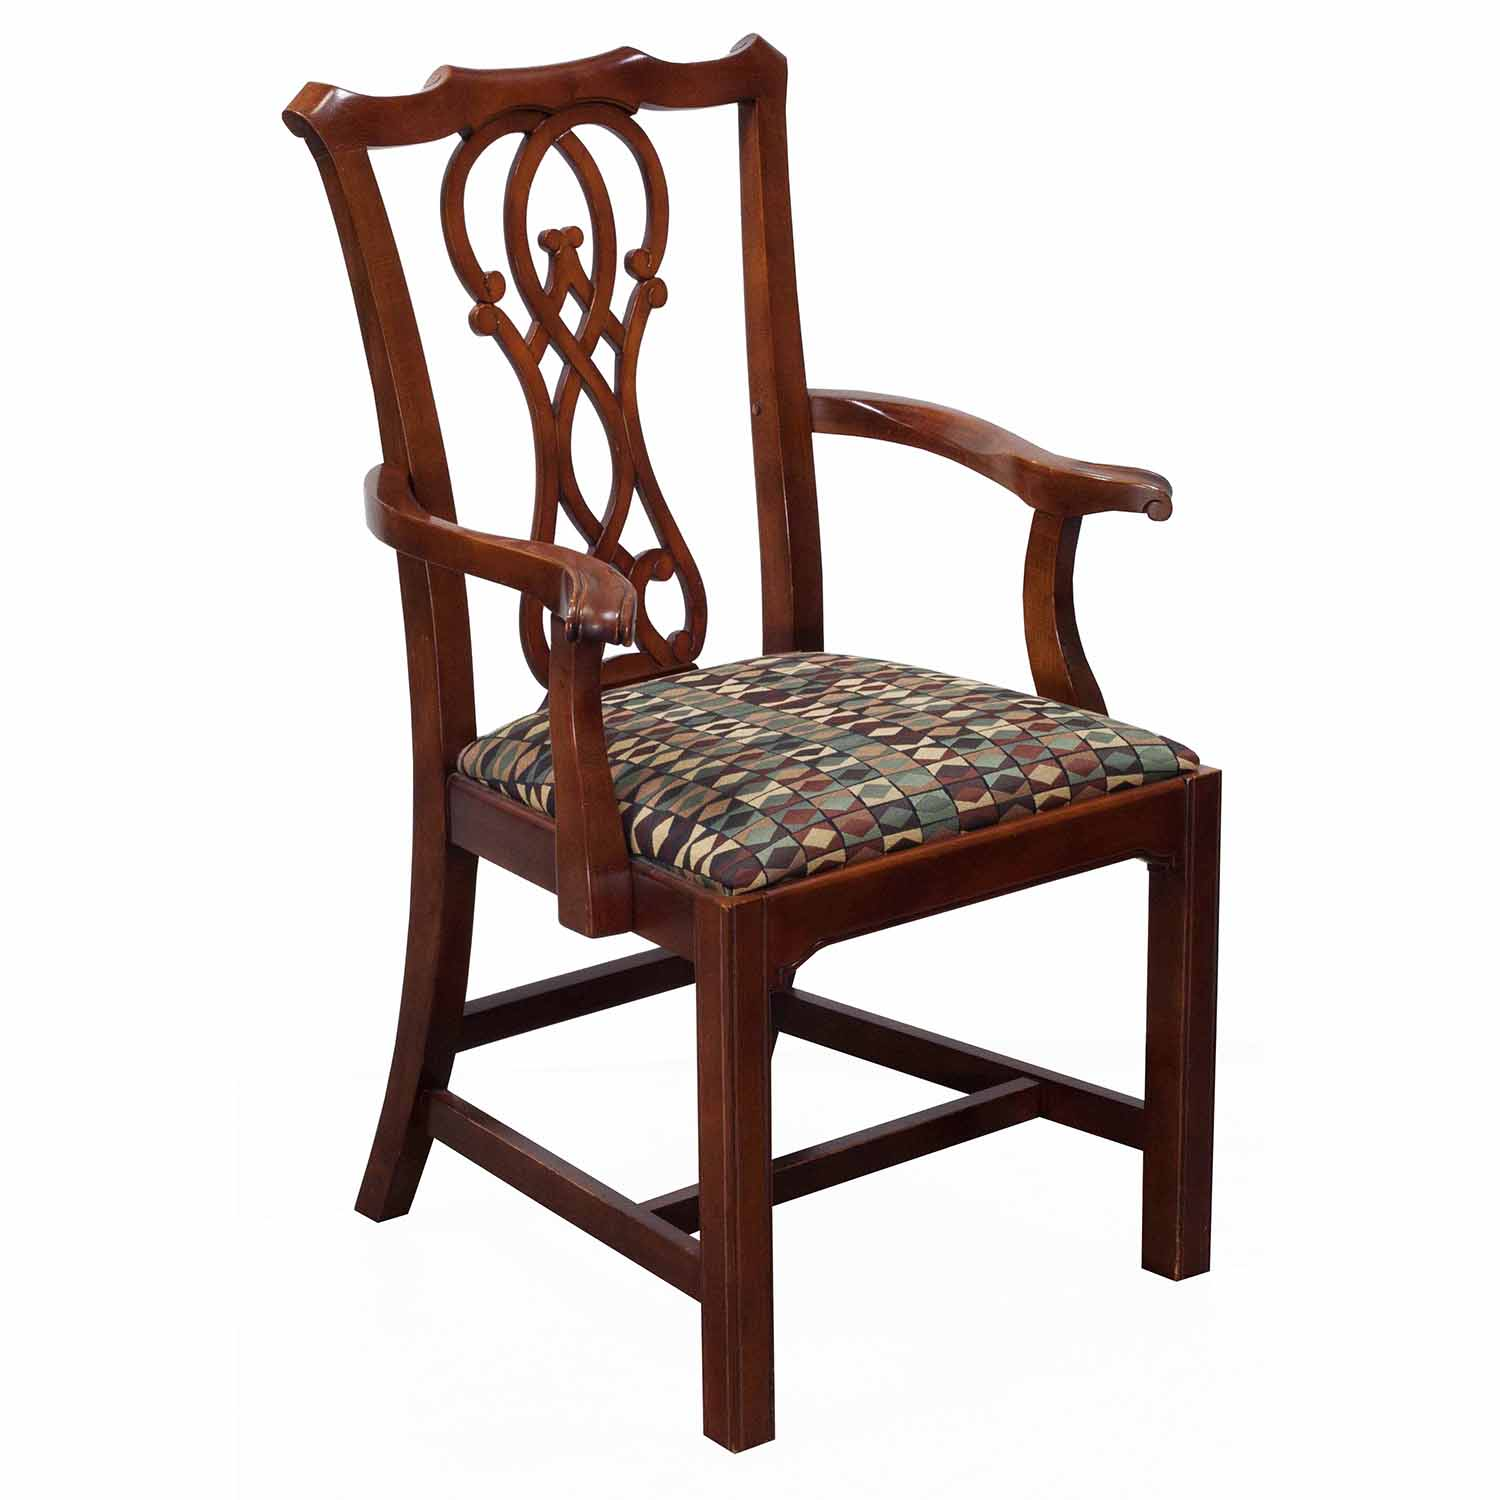 Bernhardt Eaton Square Used Wooden Arm Chair, Cherry ...